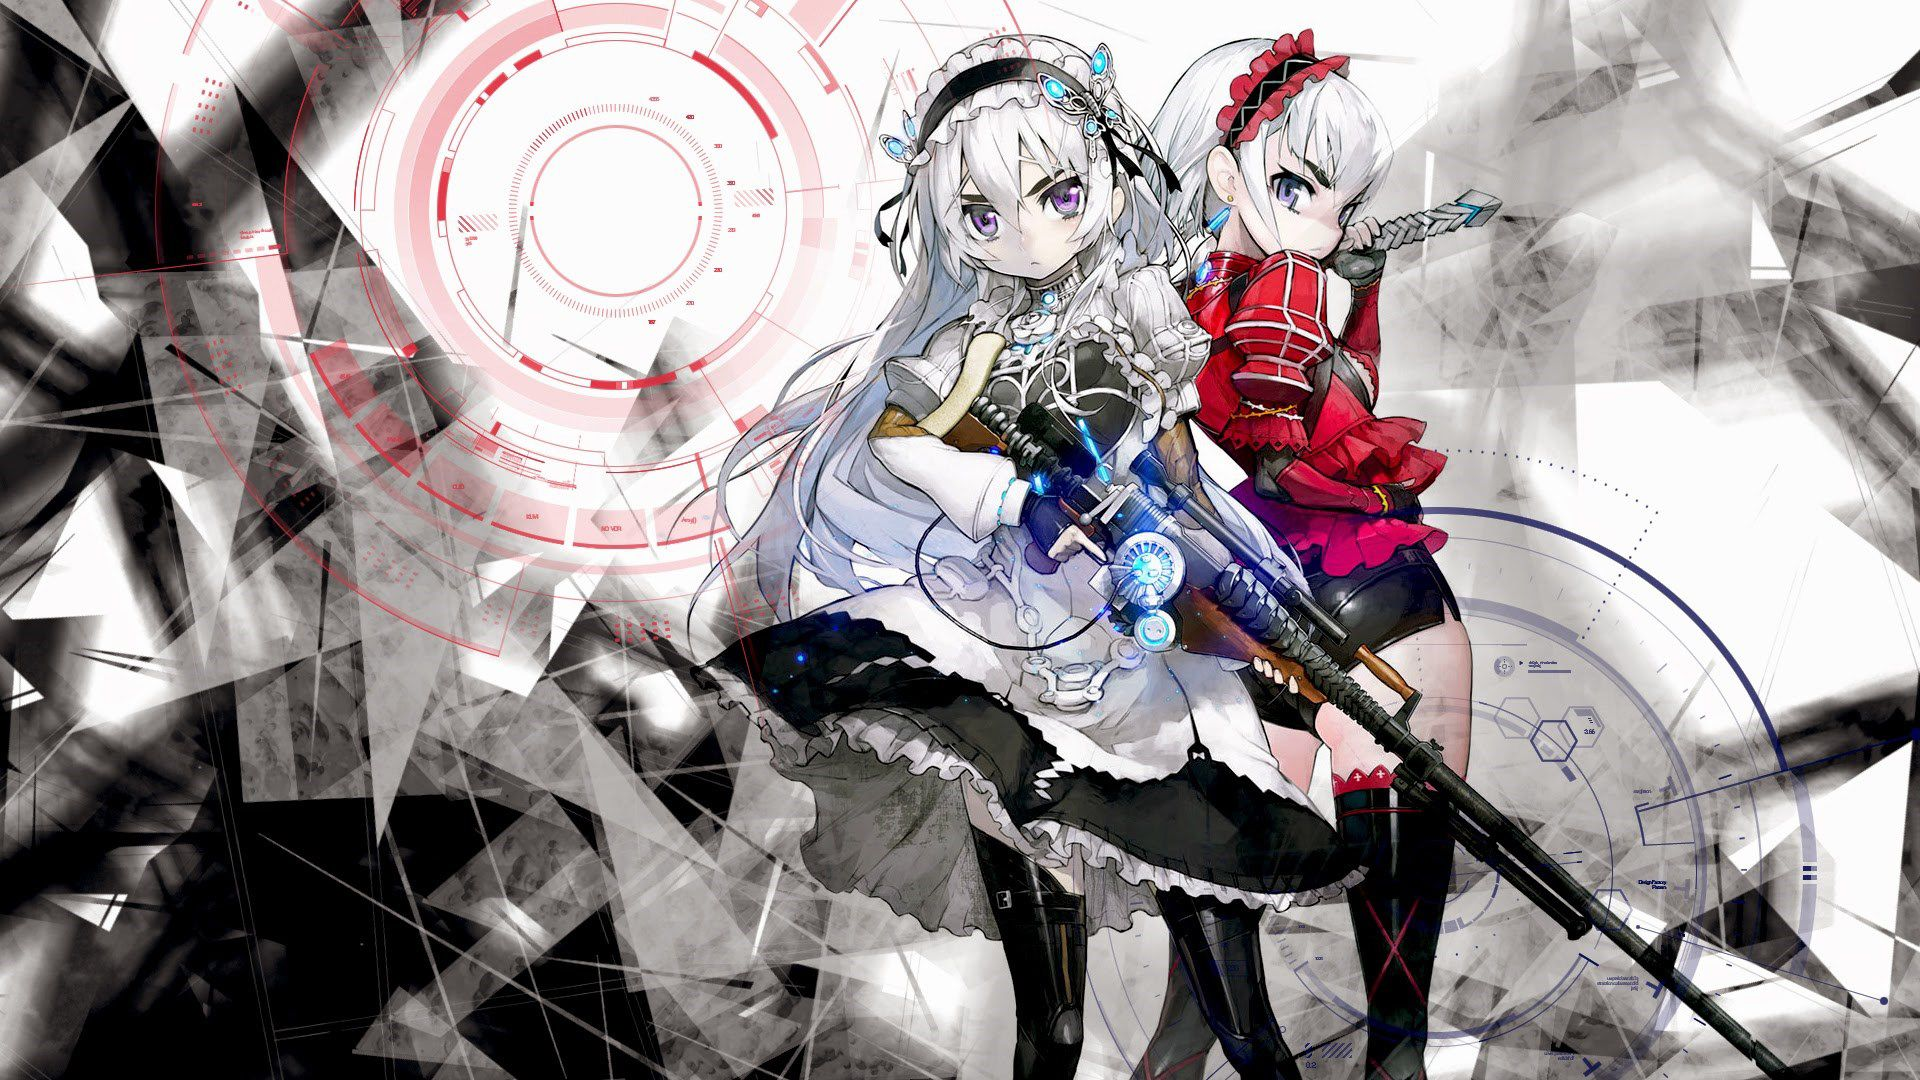 Anime Hitsugi No Chaika Wallpaper Hitsugi No Chaika Chaika the 1920x1080